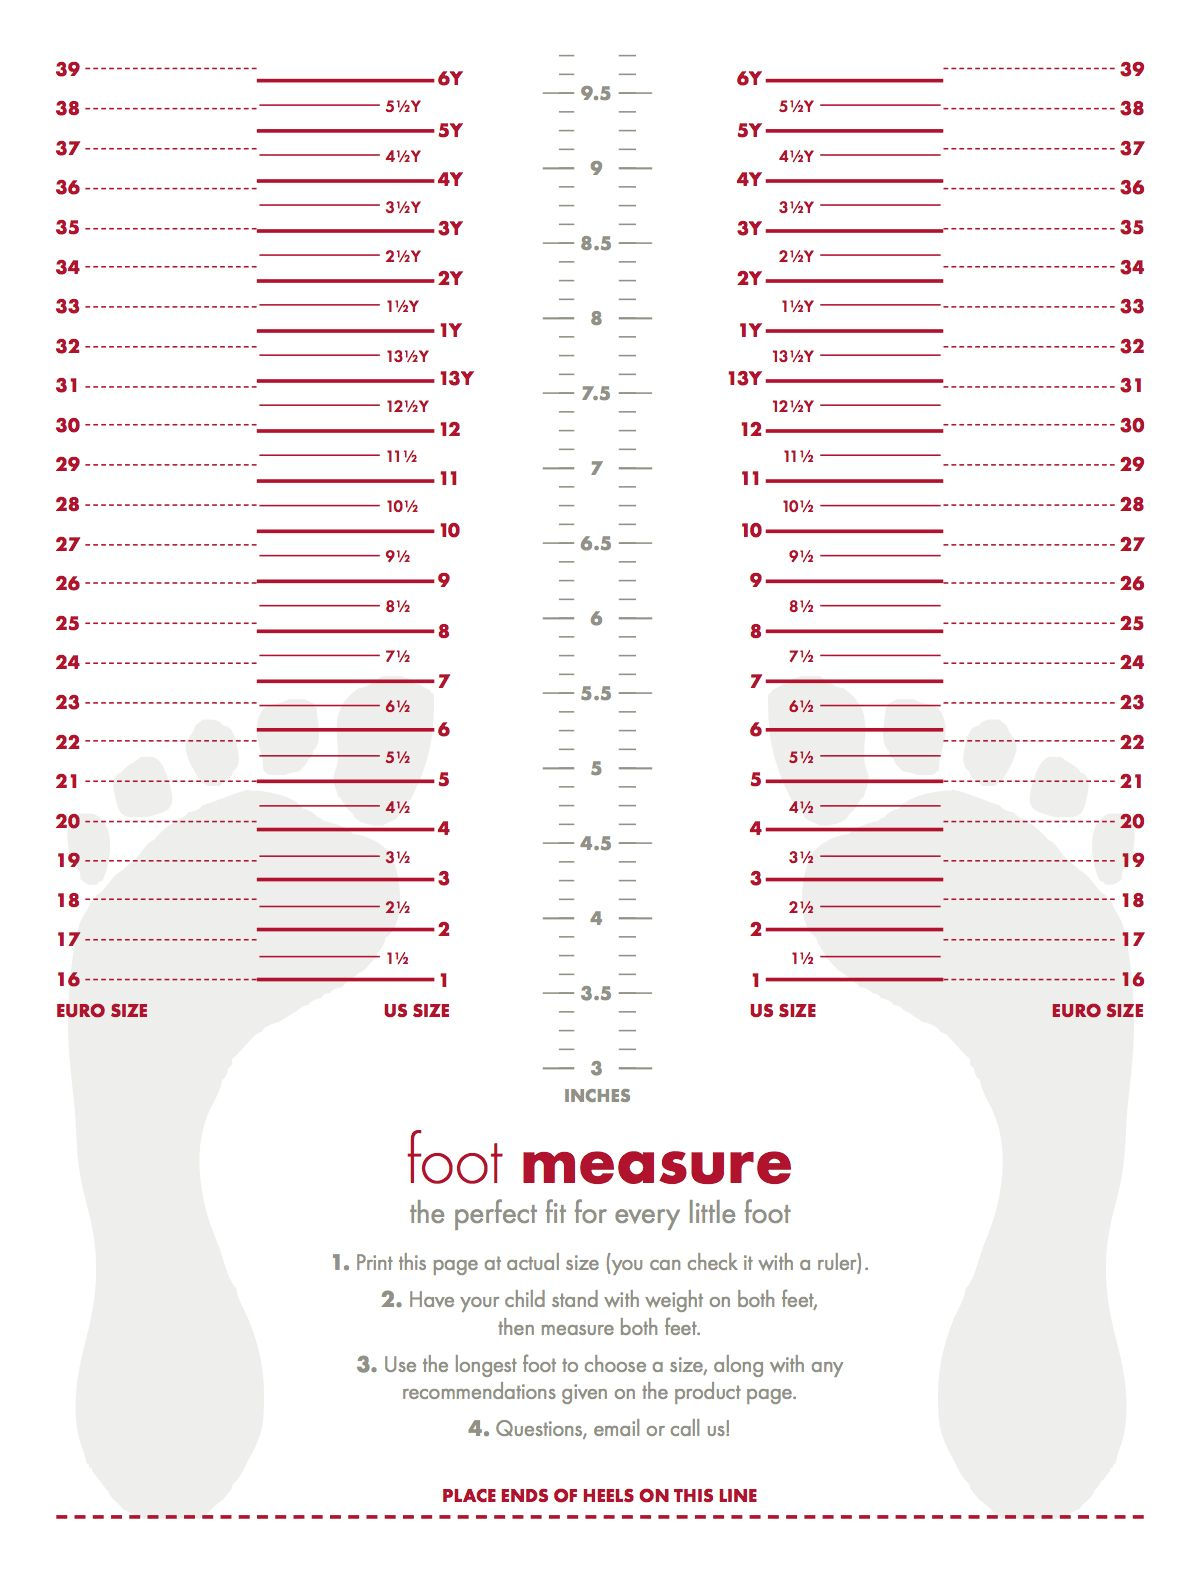 Hanna Andersson Size Chart : hanna, andersson, chart, Children's, Shoes, Same,, Running, Bigger, Smaller, Child's, Measurement., Cour…, Childrens, Shoes,, Crochet, Converse,